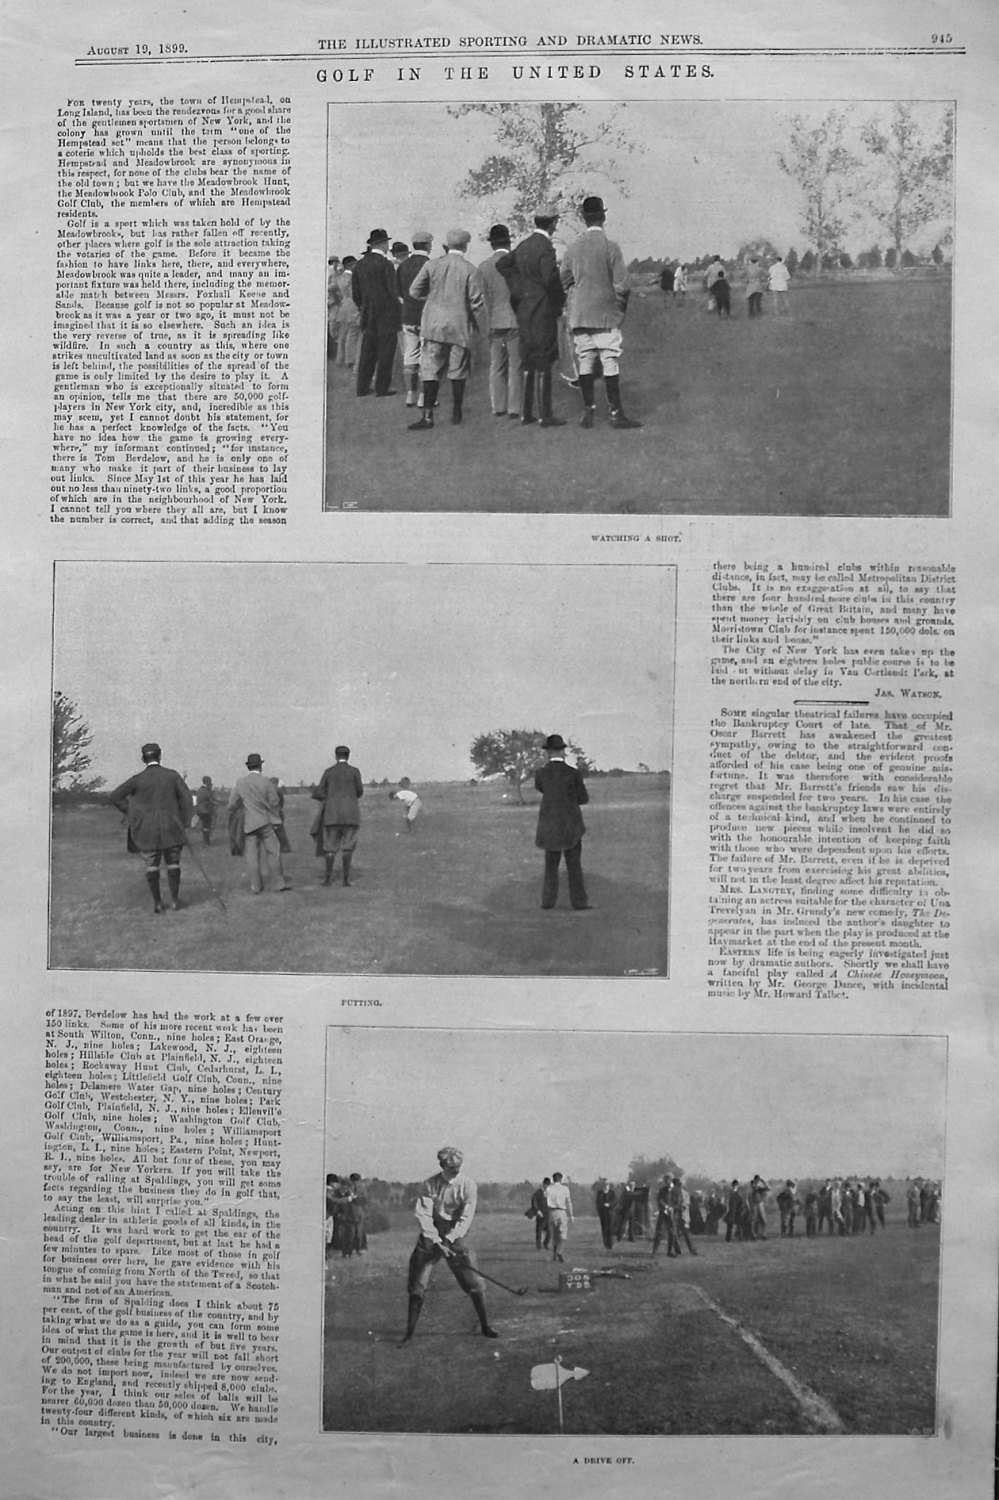 Golf in the United States. 1899